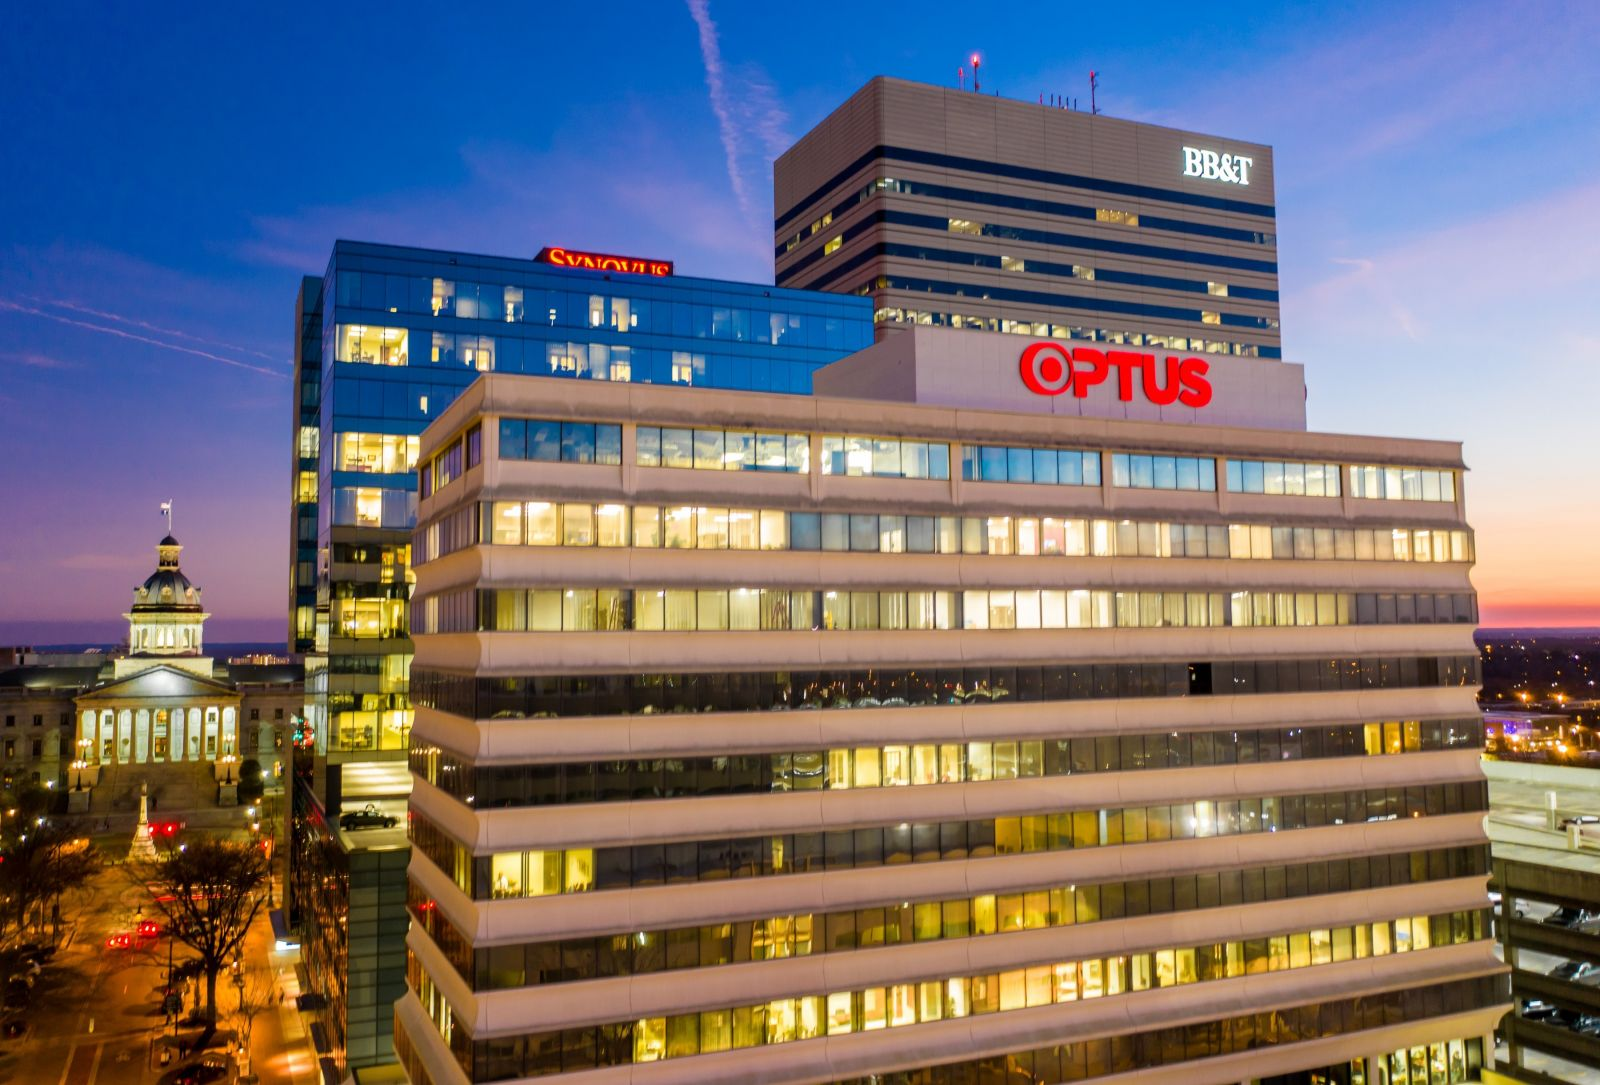 As the second round of PPP loans kicks into high gear, S.C. banks say that while the level of panic has subsided, the need is still great. Columbia's Optus Bank is already processing 600 loans. (Photo/Jeff Blake/JeffBlakePhoto.com)